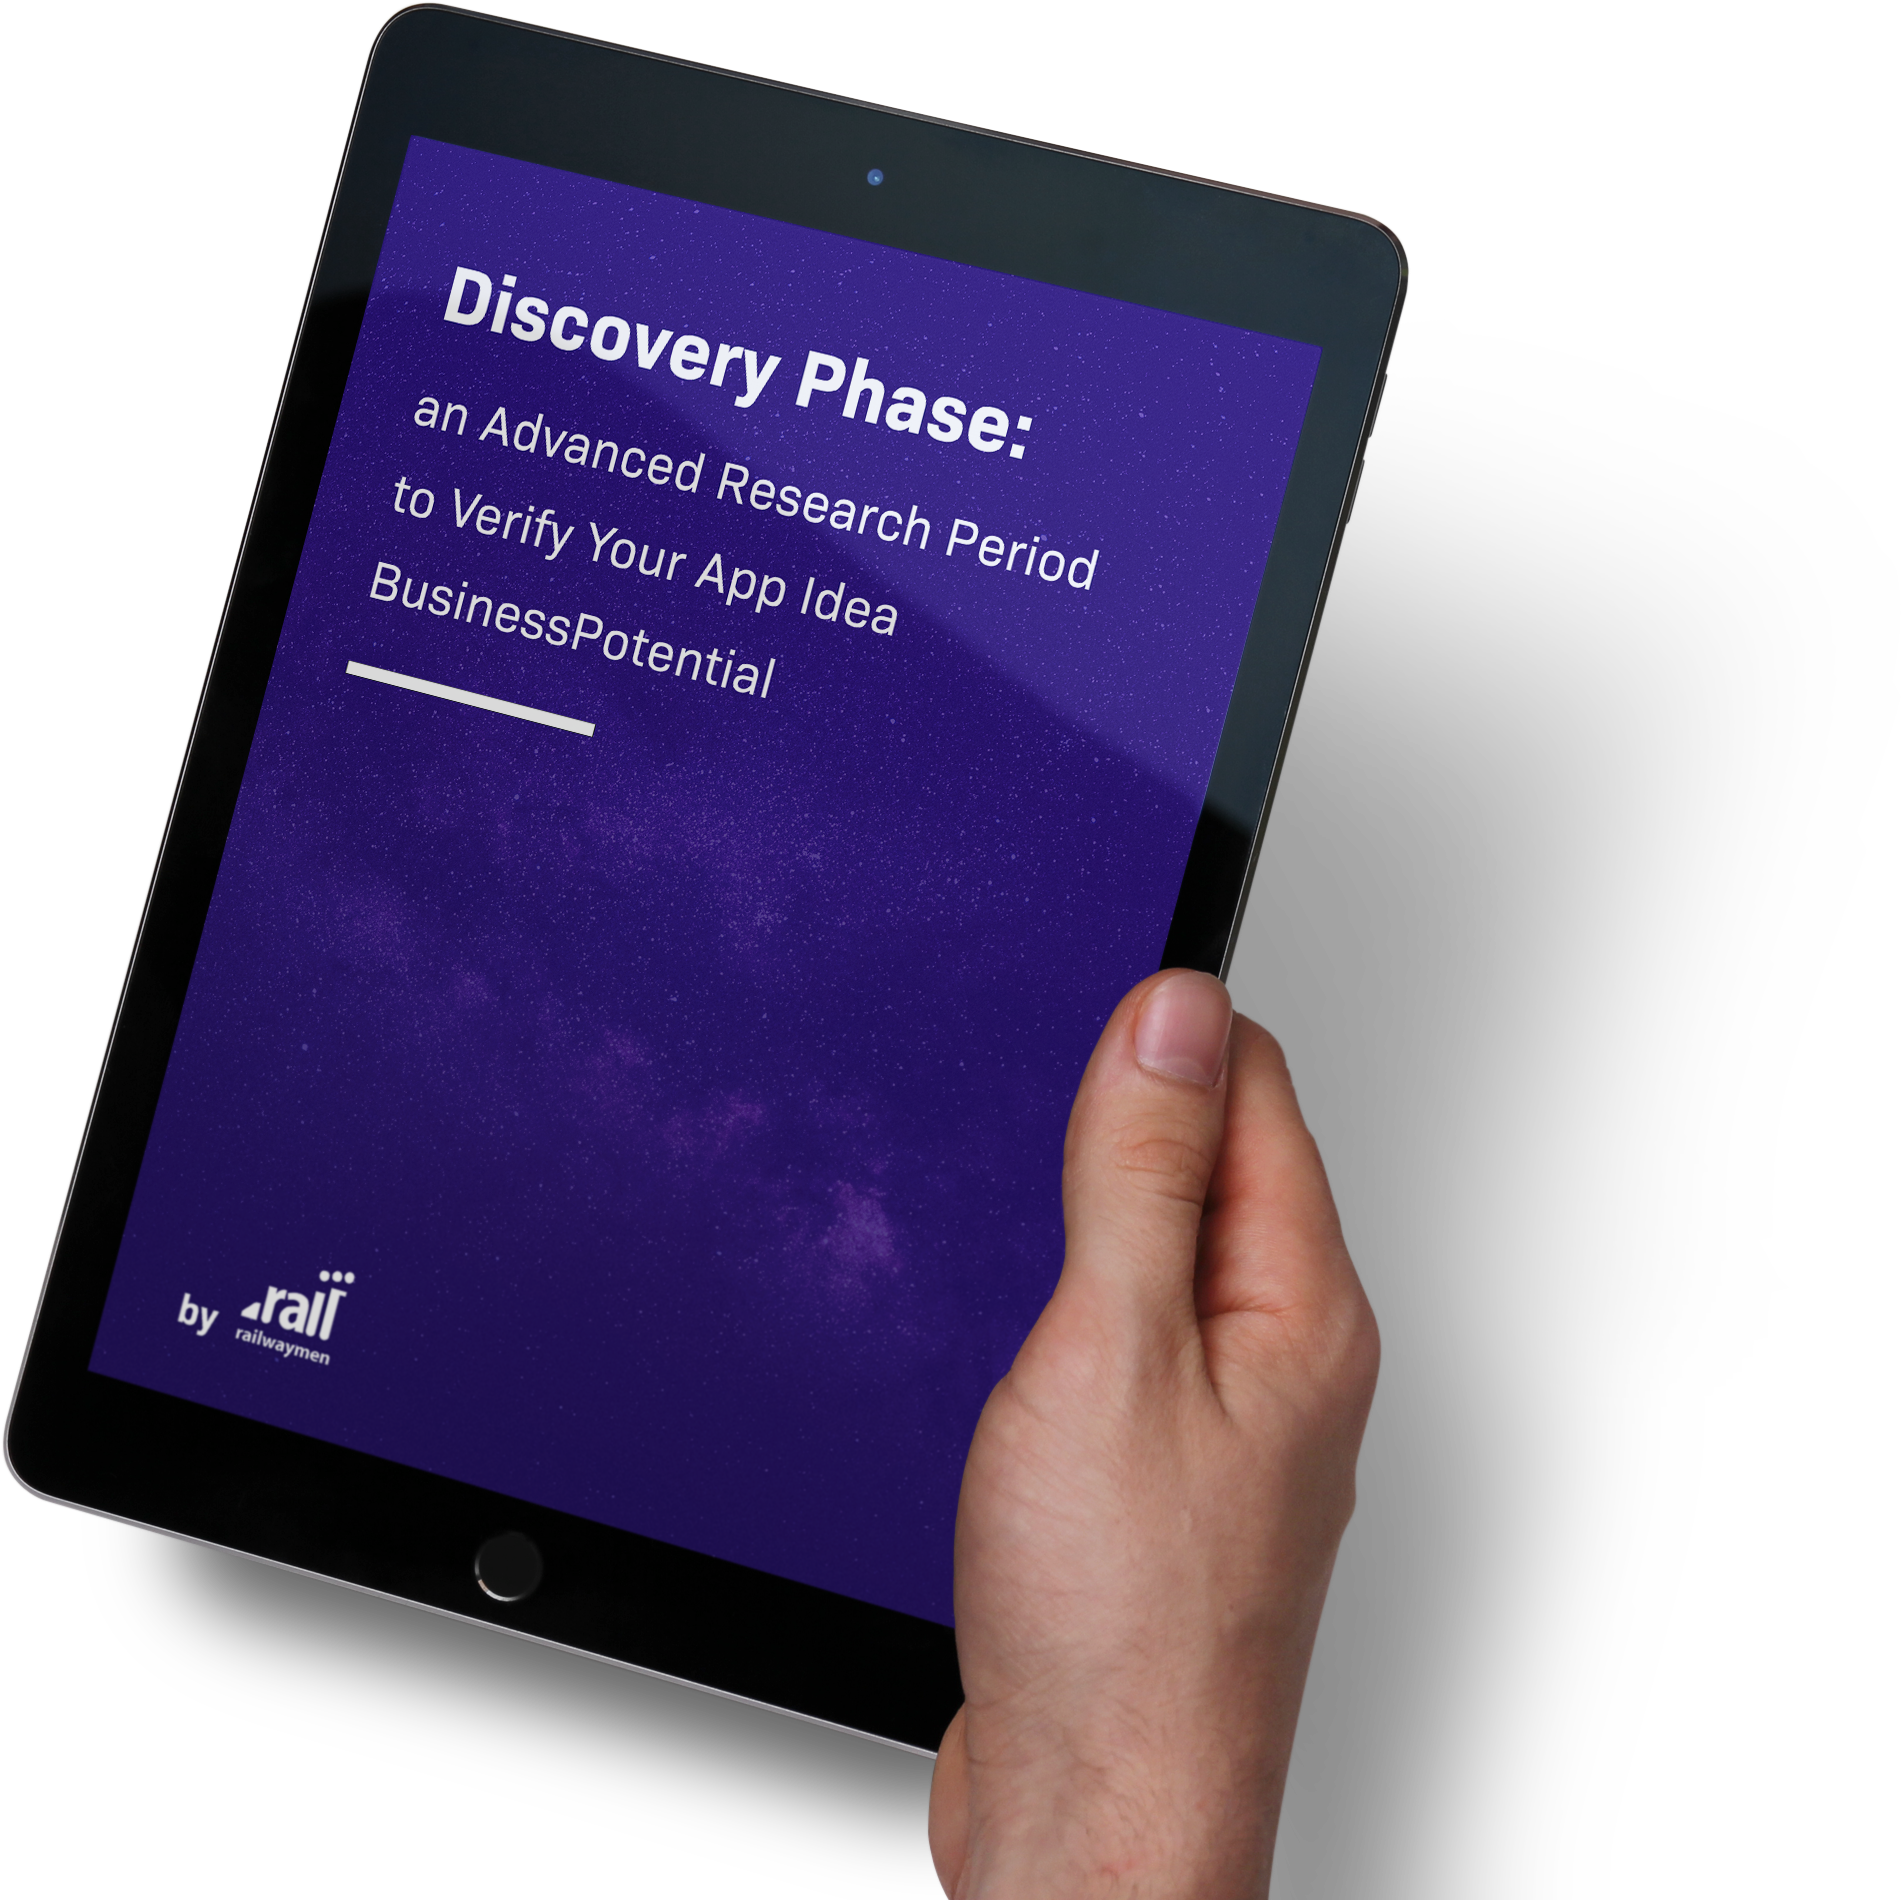 Restaurant App Development - Discovery Phase ebook